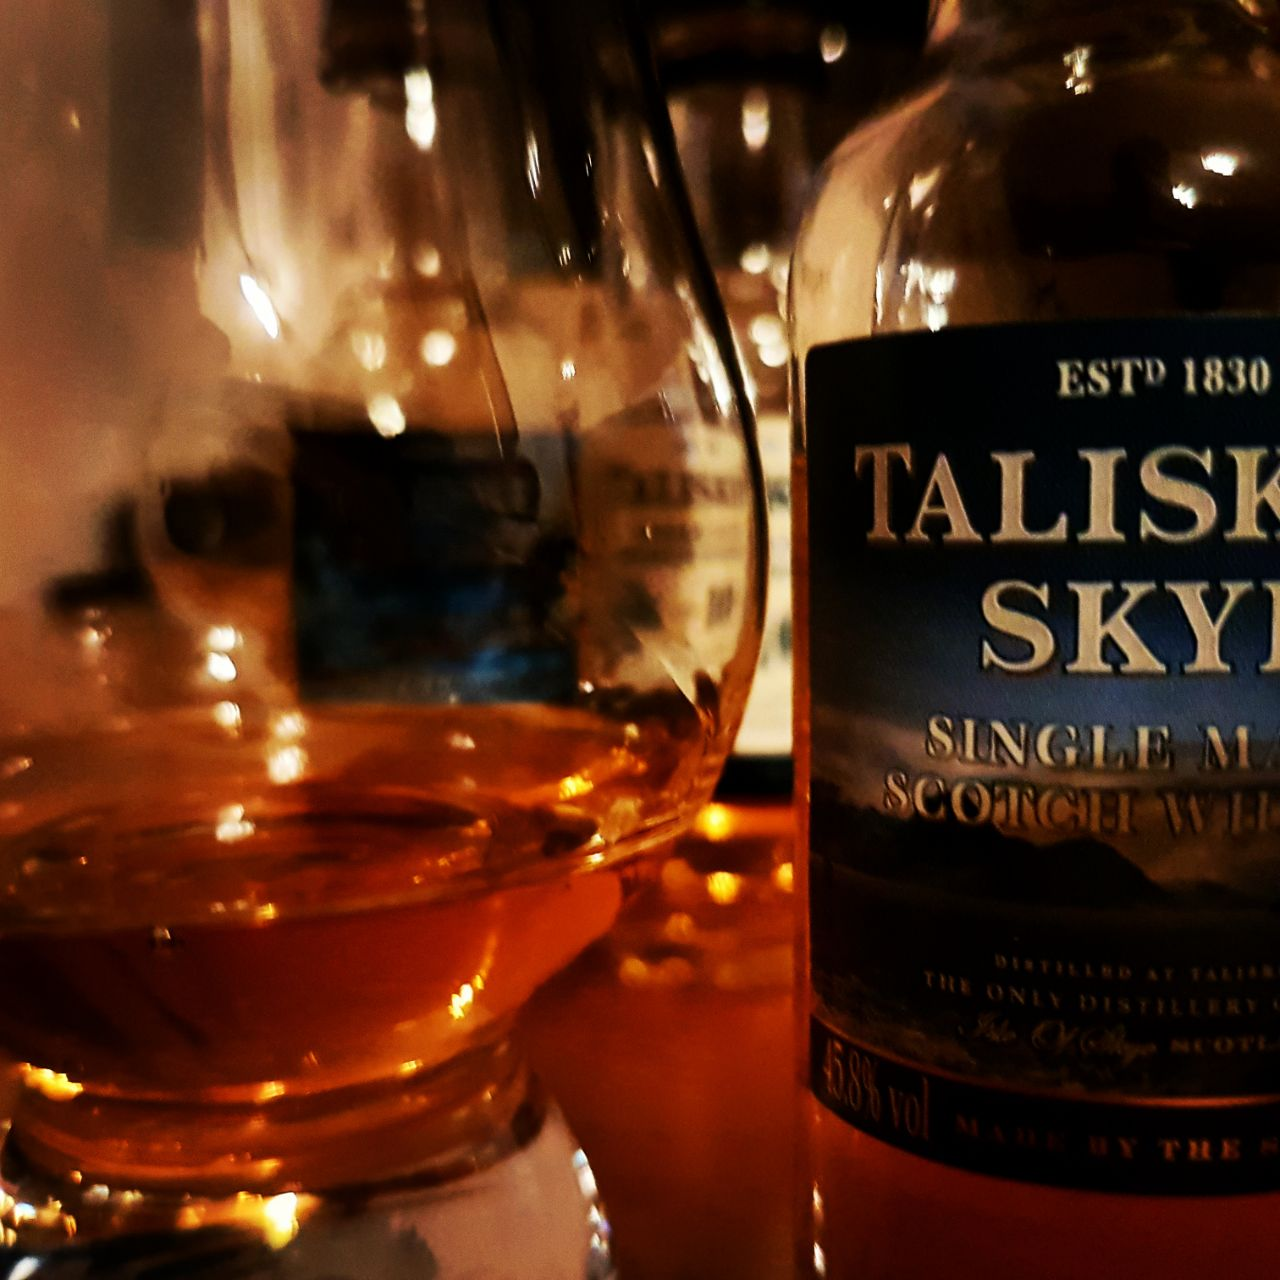 Talisker Skye Islay Single Malt Scotch Whisky